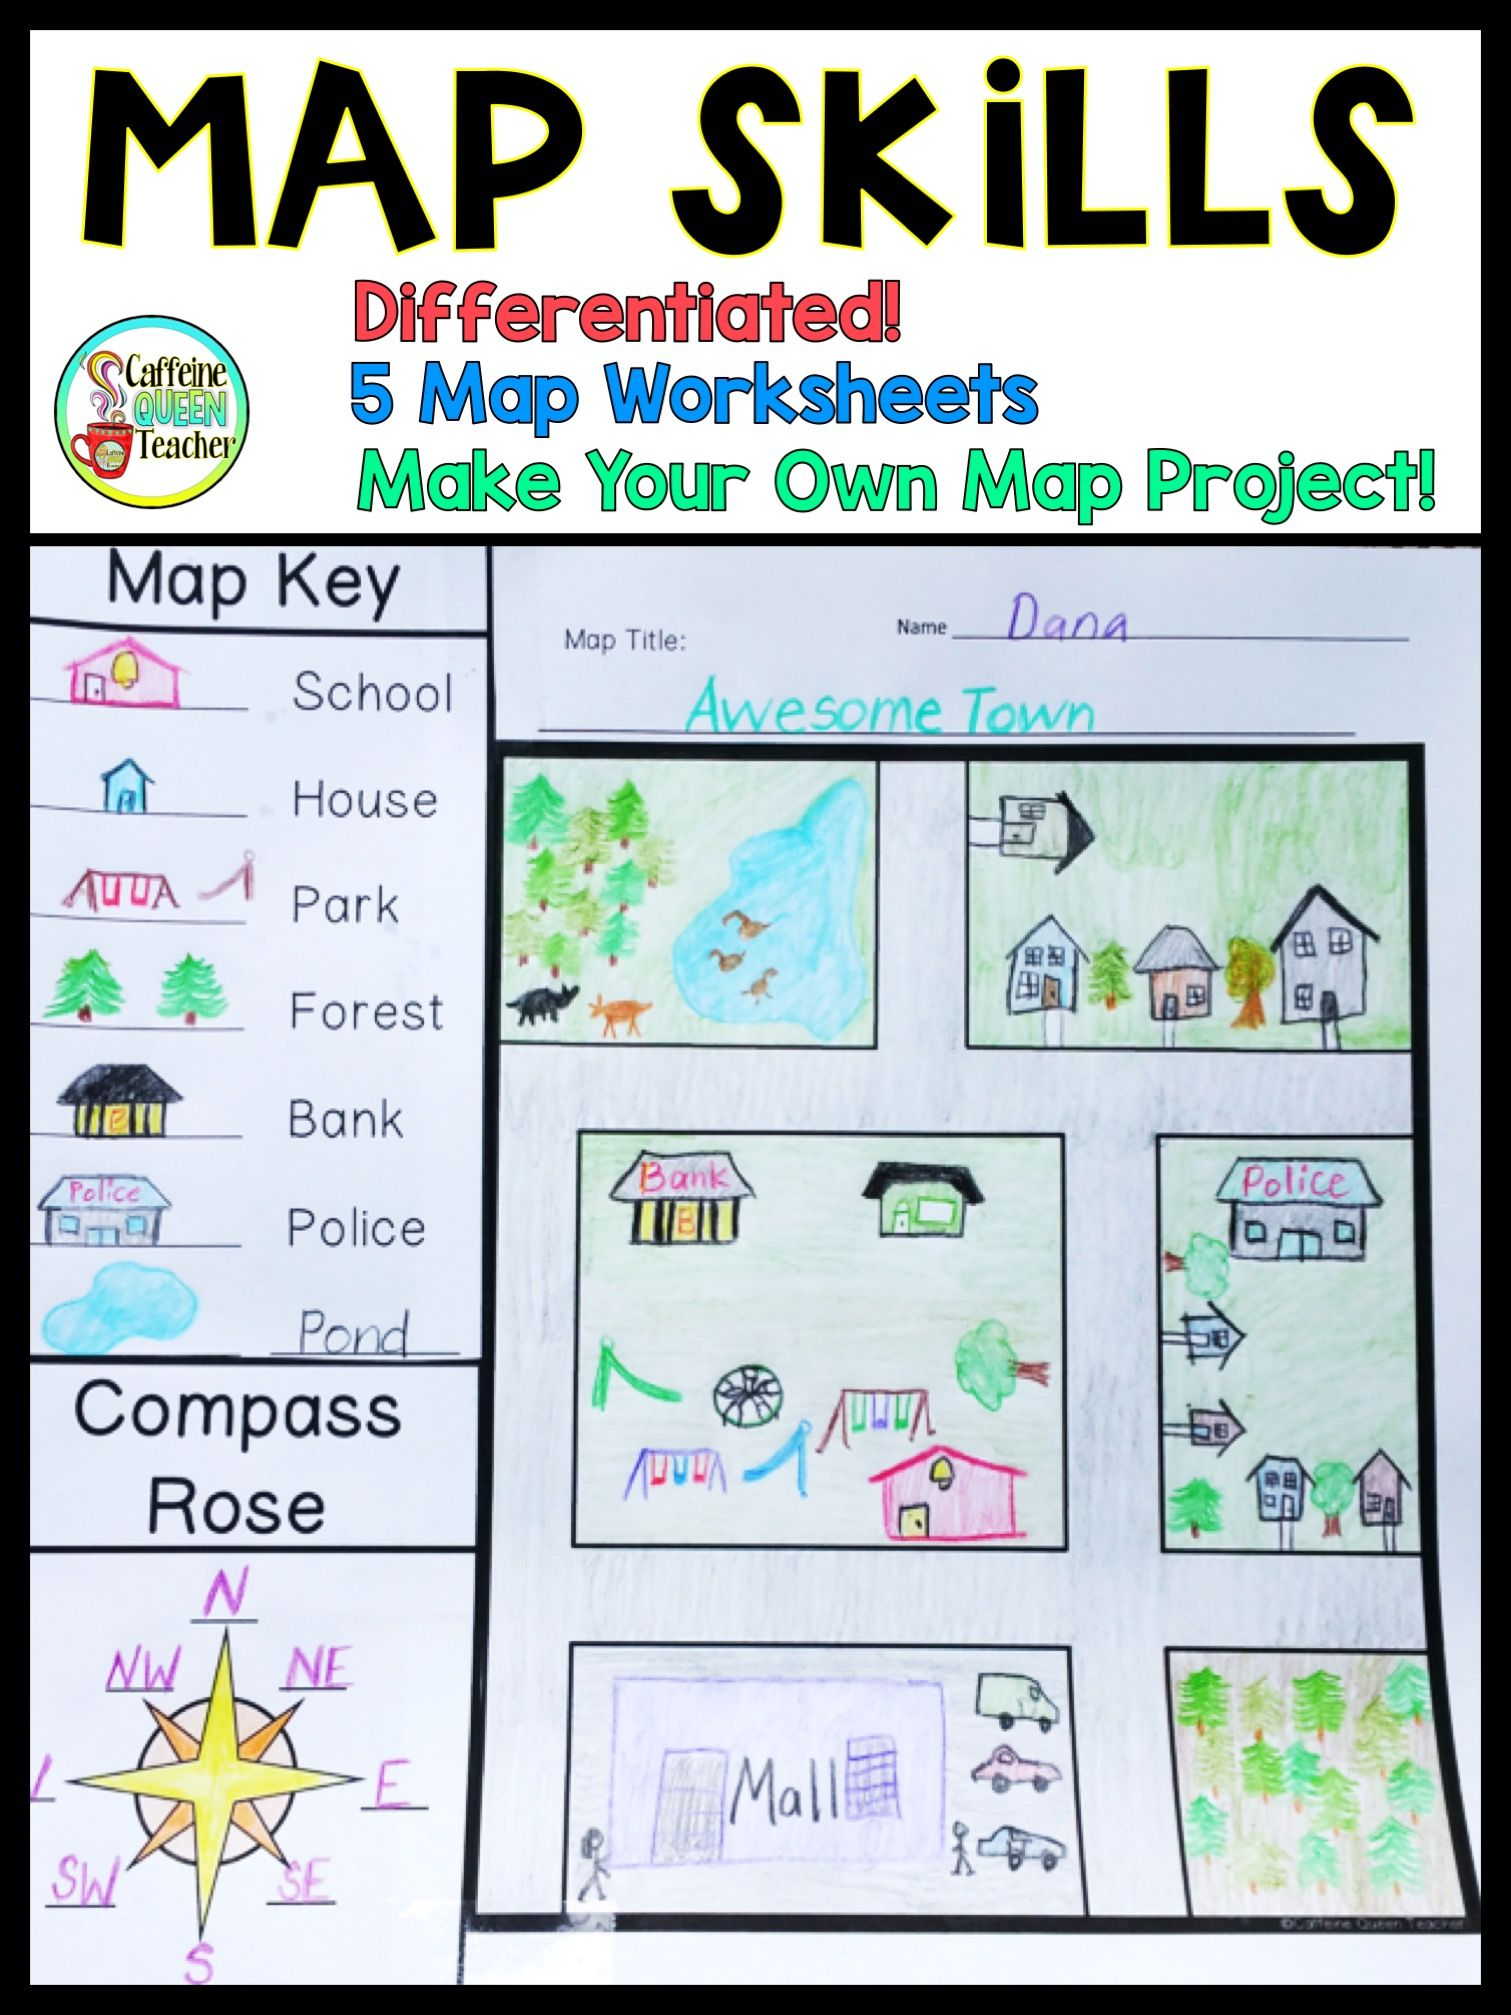 Map Skills Make Your Own Map Project